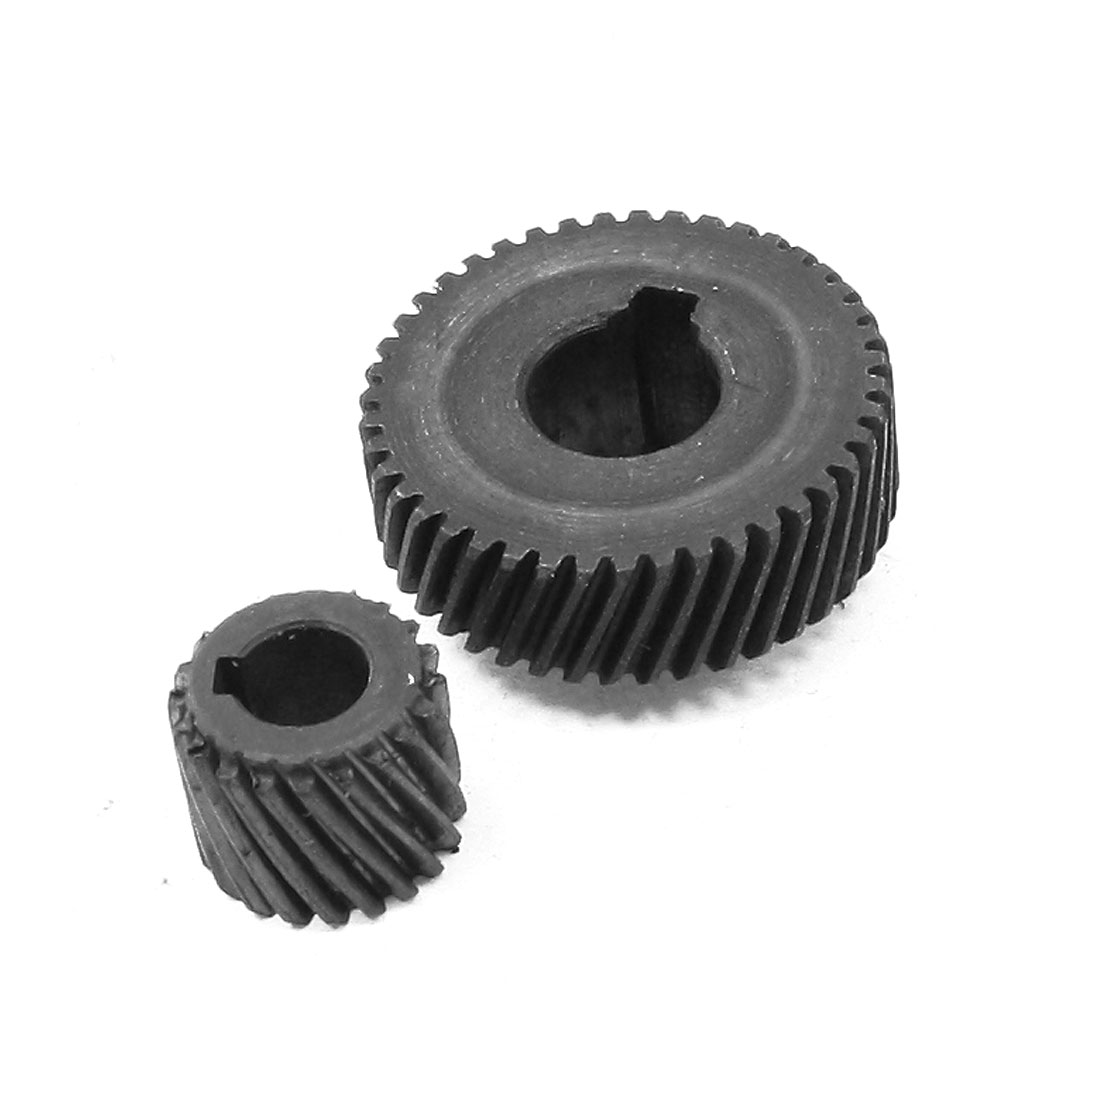 Repair Part Spiral Bevel Gear Pinion Set for Makita 4100NB Cutting Machine